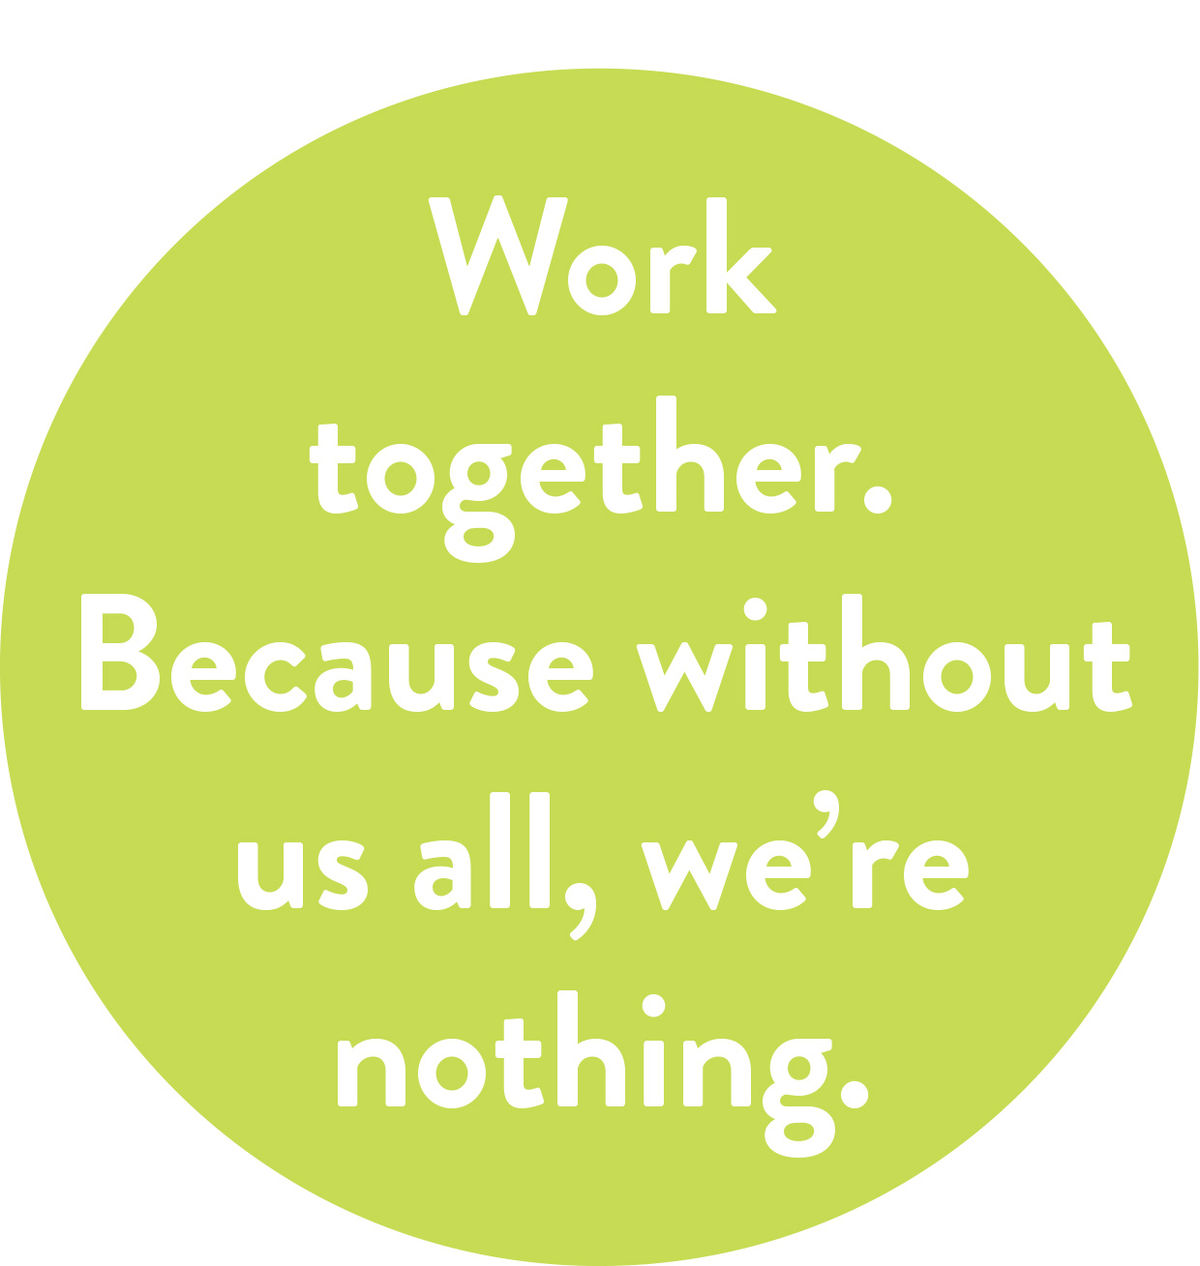 Work together. Because without us all, we're nothing